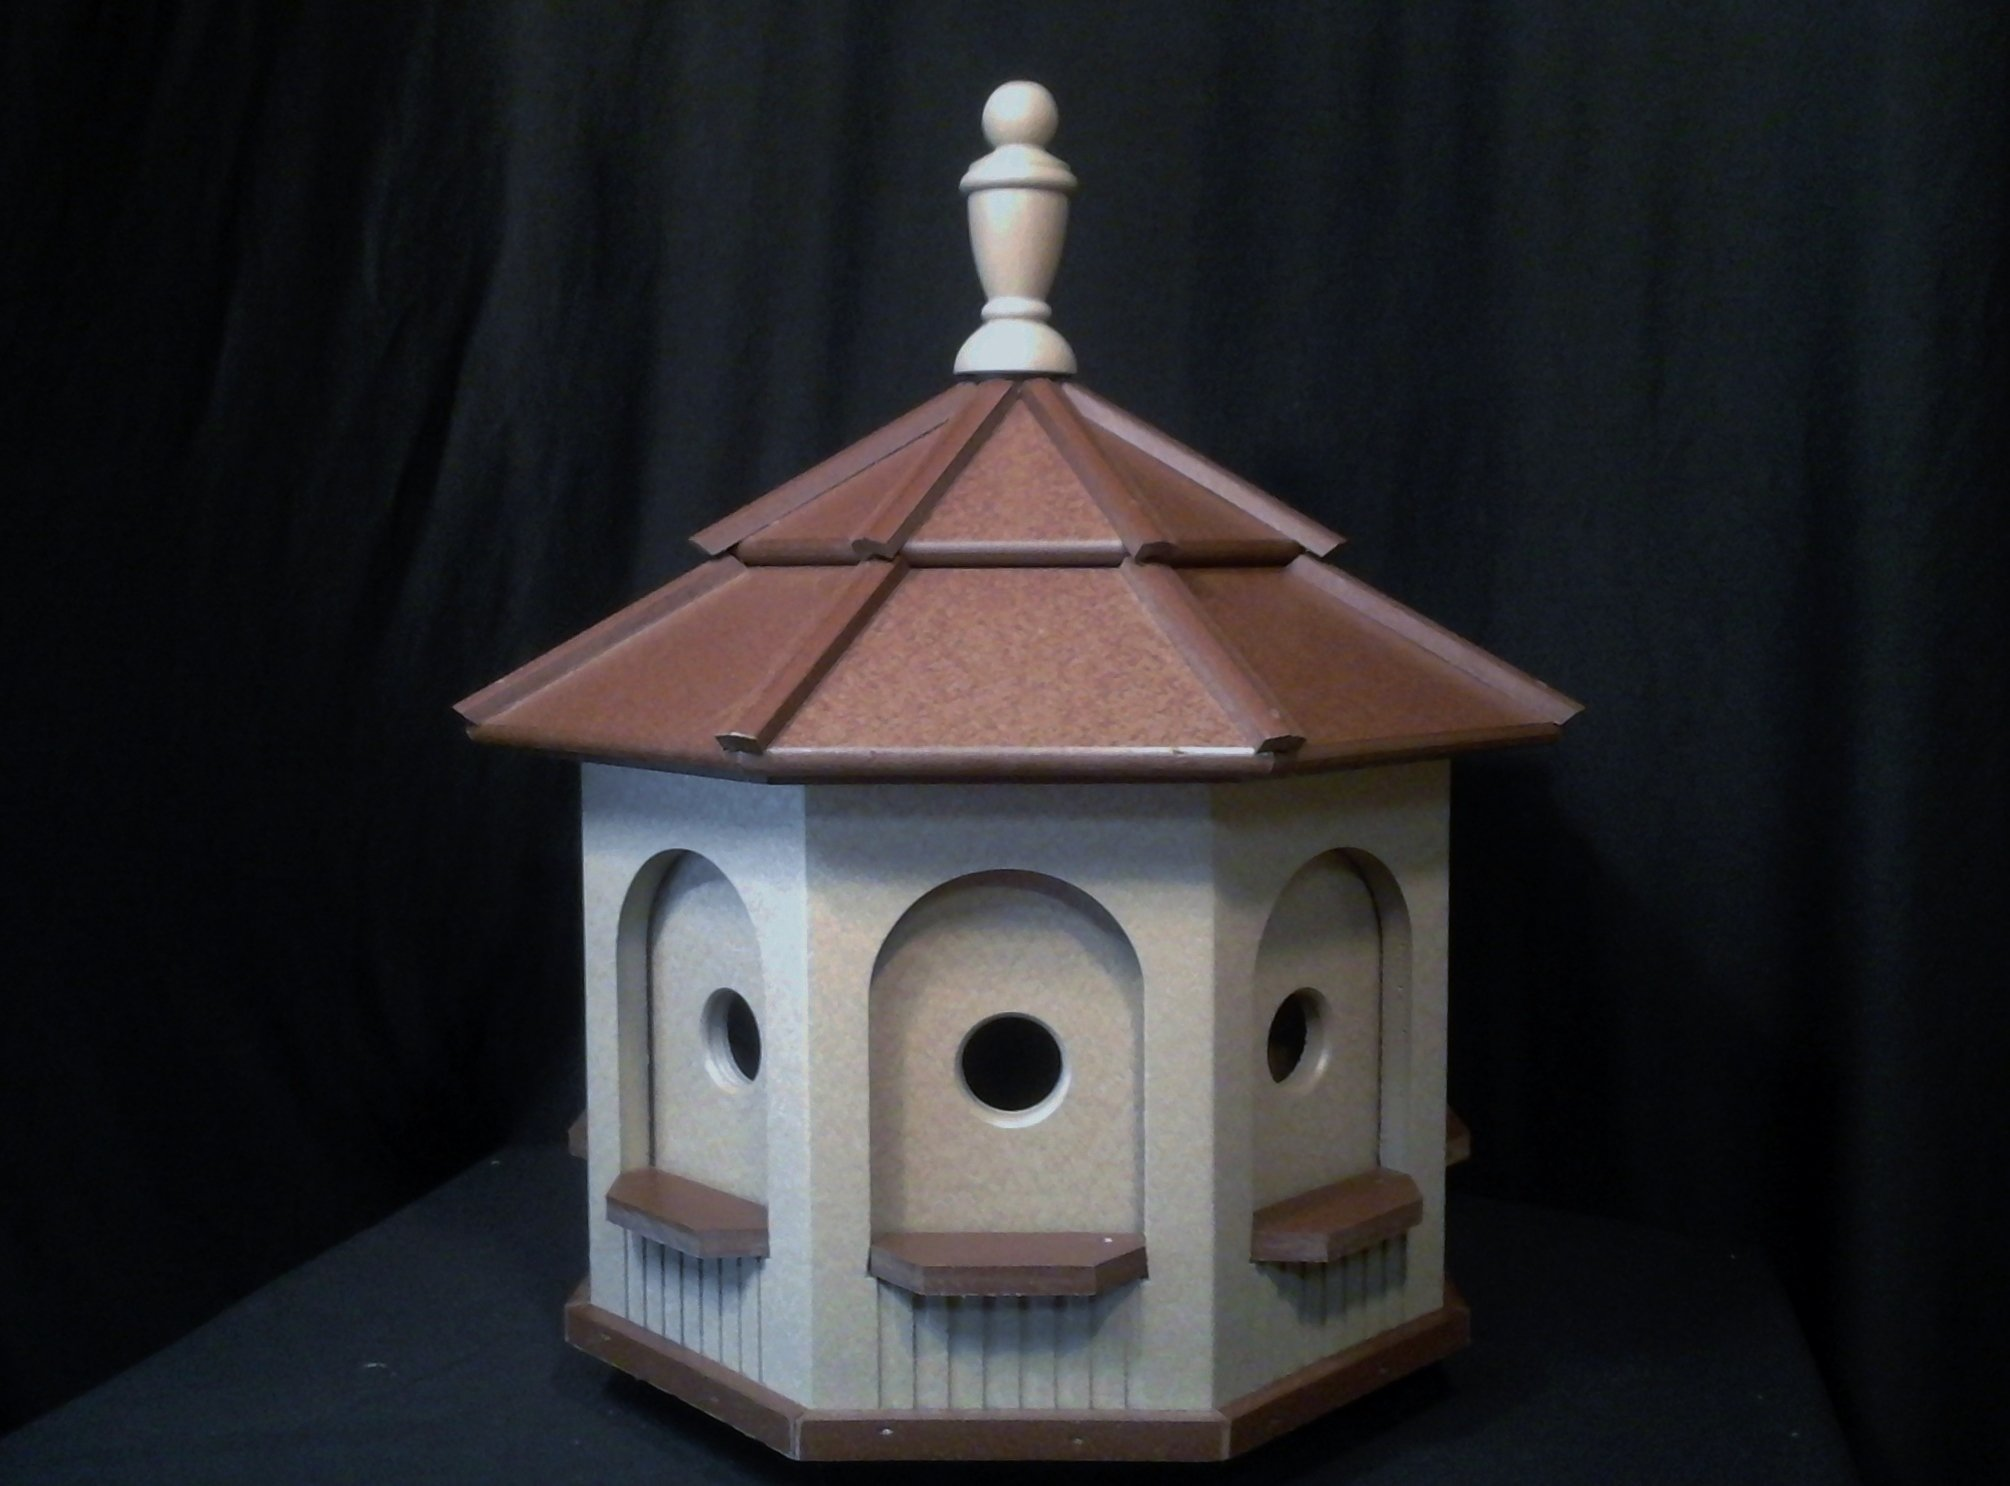 Large Poly Octagon Handcrafted Handmade Homemade Birdhouse Garden Clay & Brown Roof